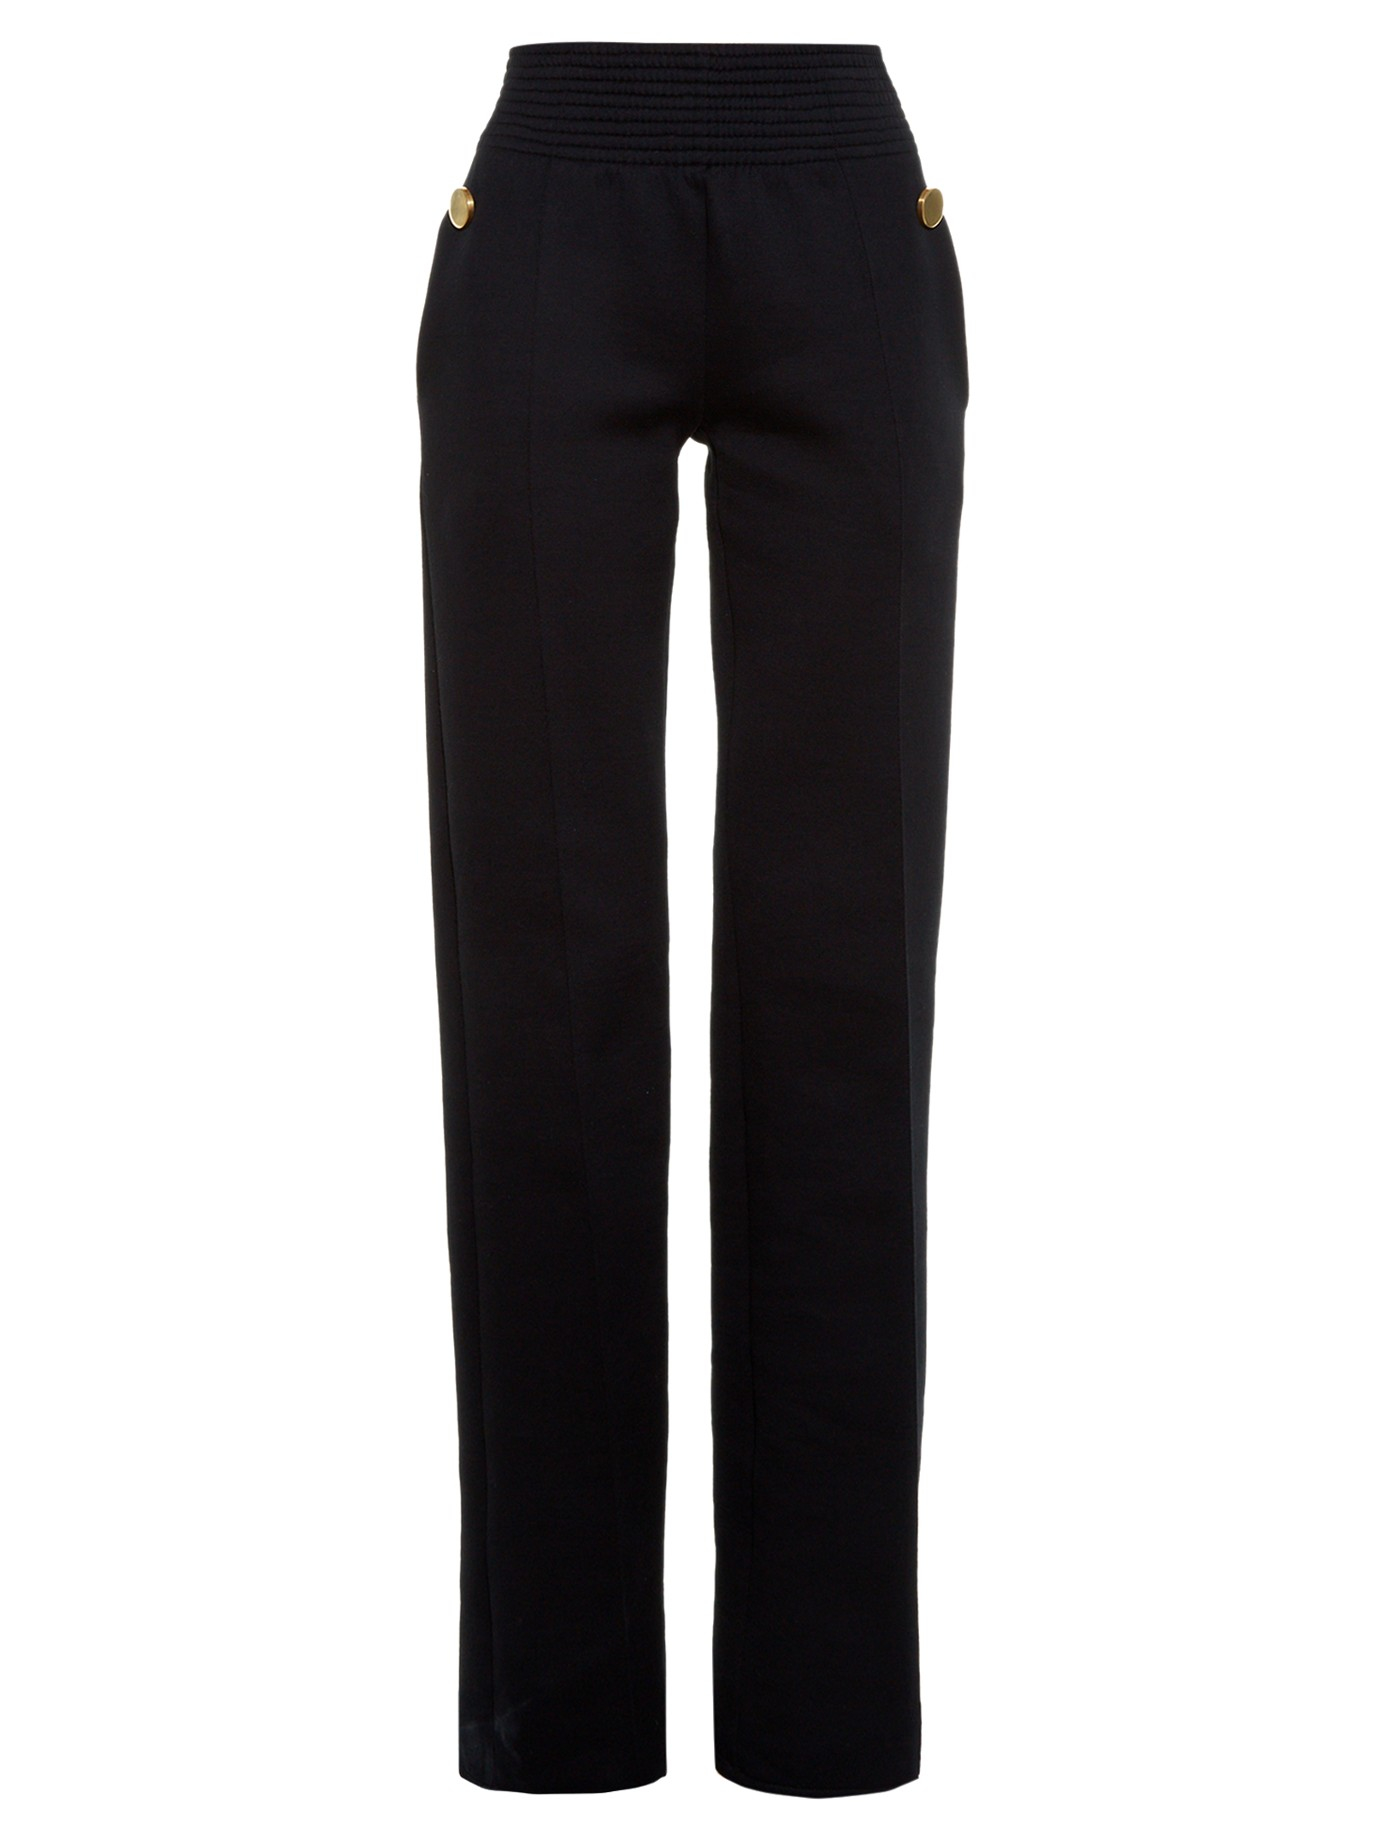 Find great deals on eBay for wide leg jersey pants. Shop with confidence.